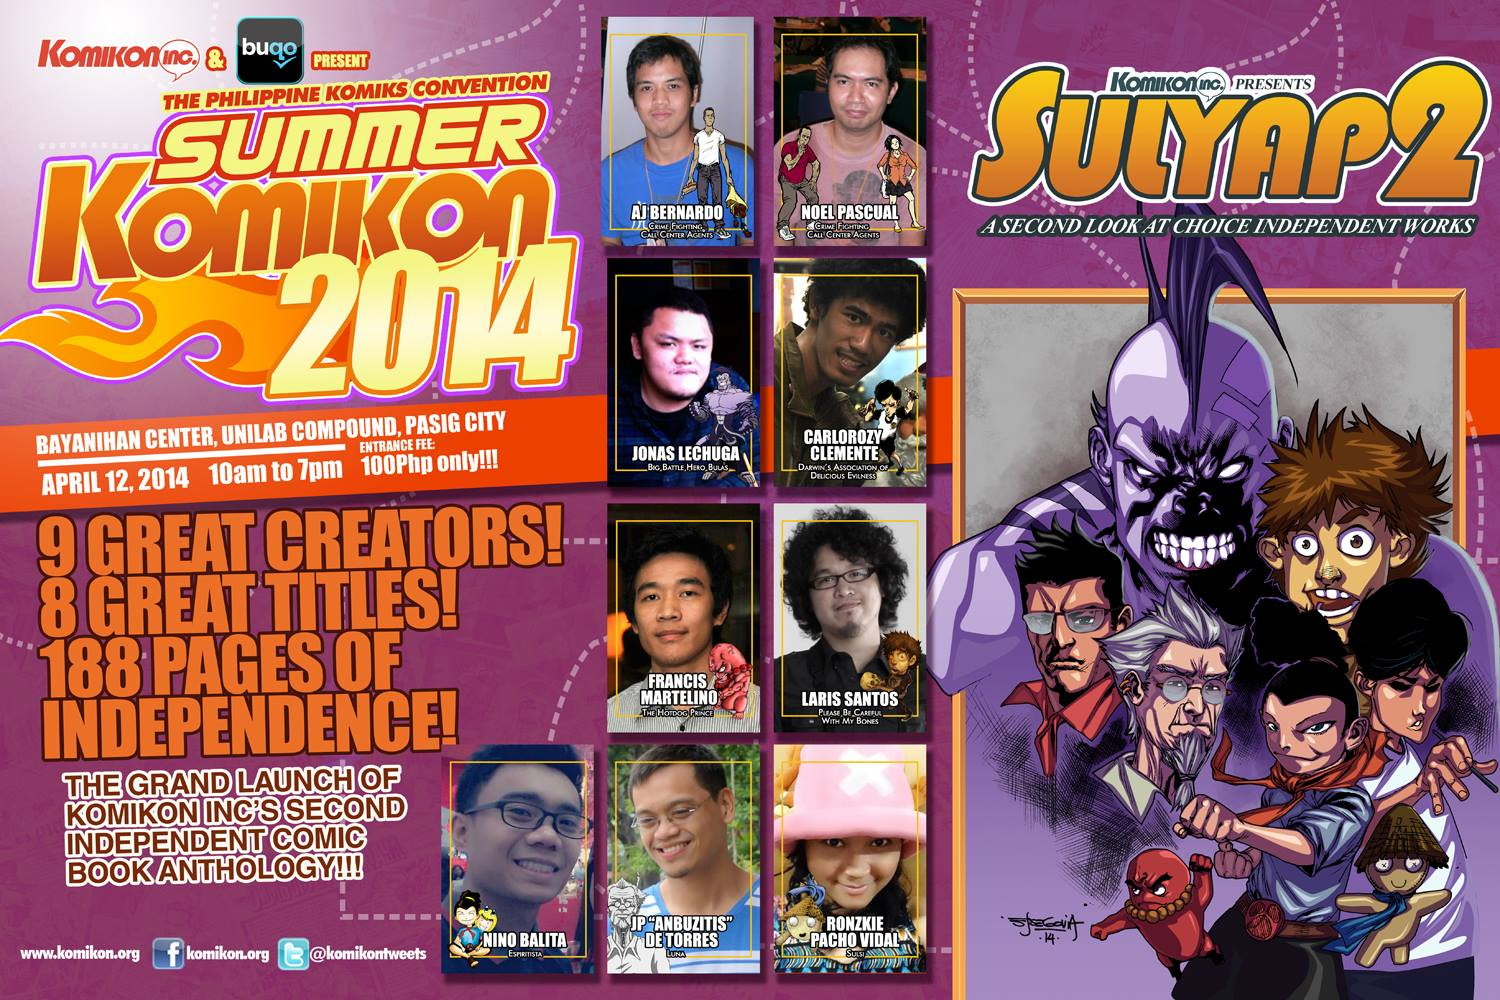 Sulyap 2 at Summer Komikon 2014